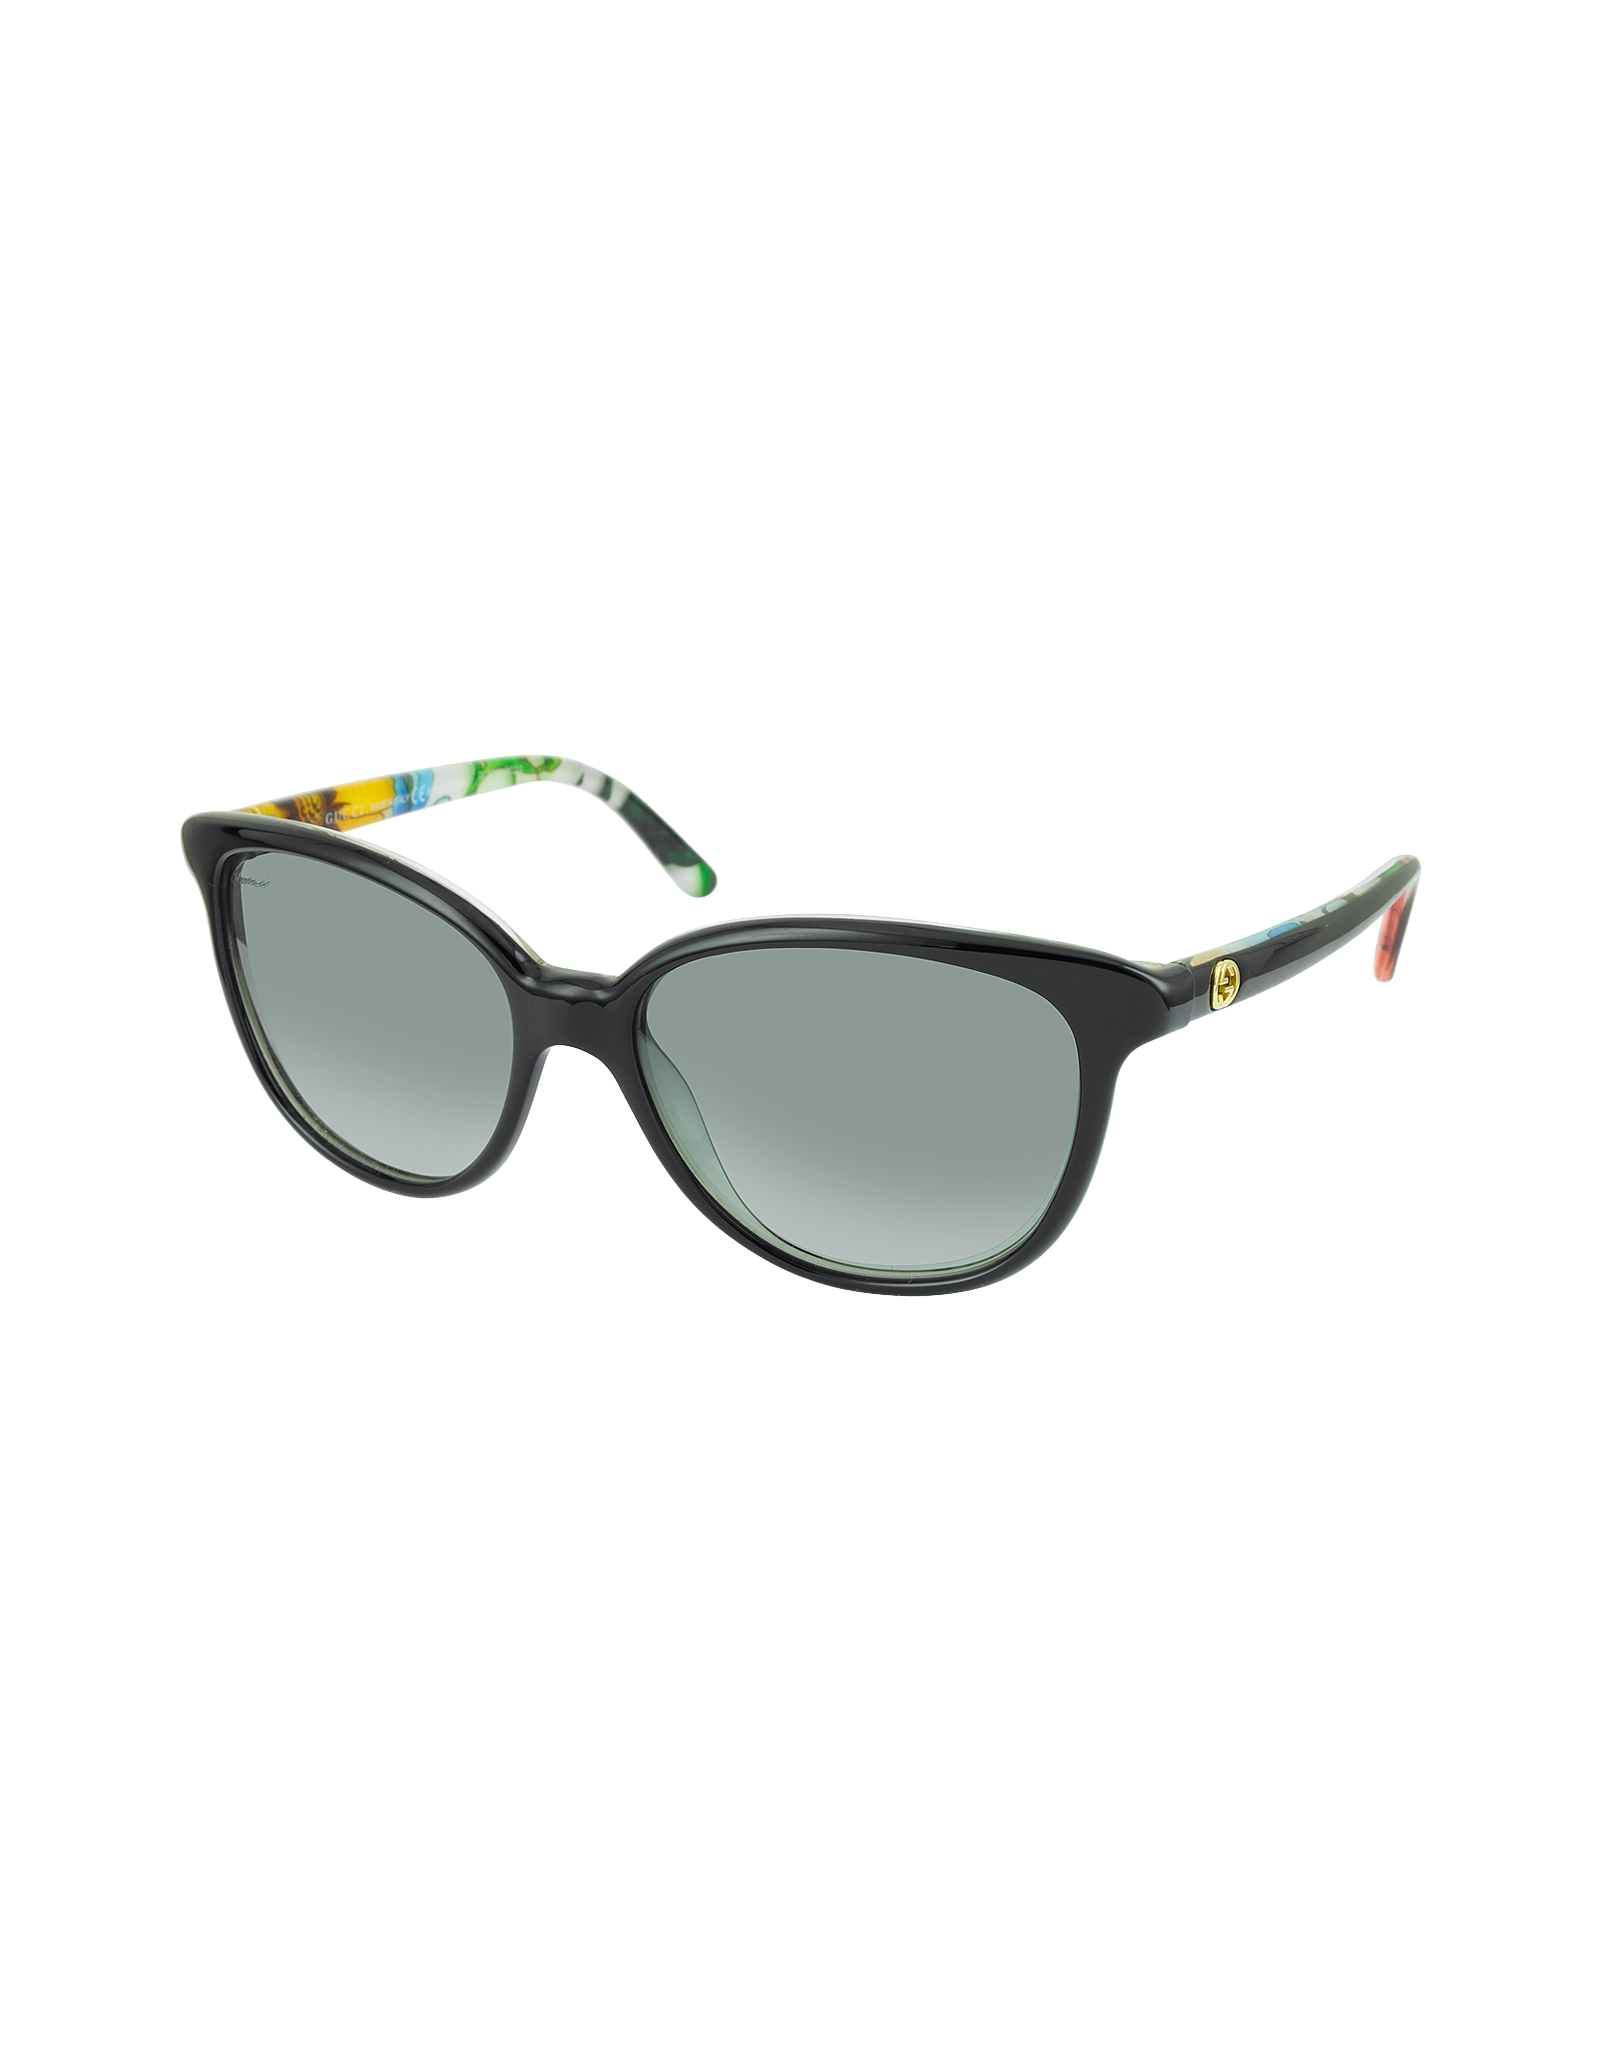 8e82559b6b Gucci Ladies Black Sunglasses